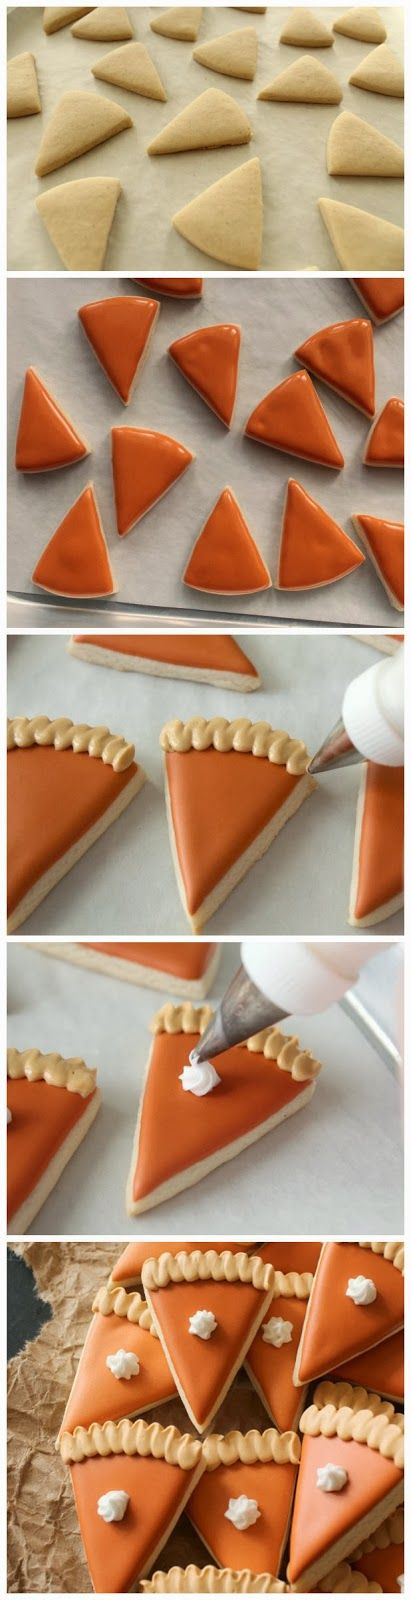 Mini-Pumpkin Pie Cookies - These are just too cute !!! Very creative and yet so simple…      Ingredients    Pumpkin orange 20-second icing  ...